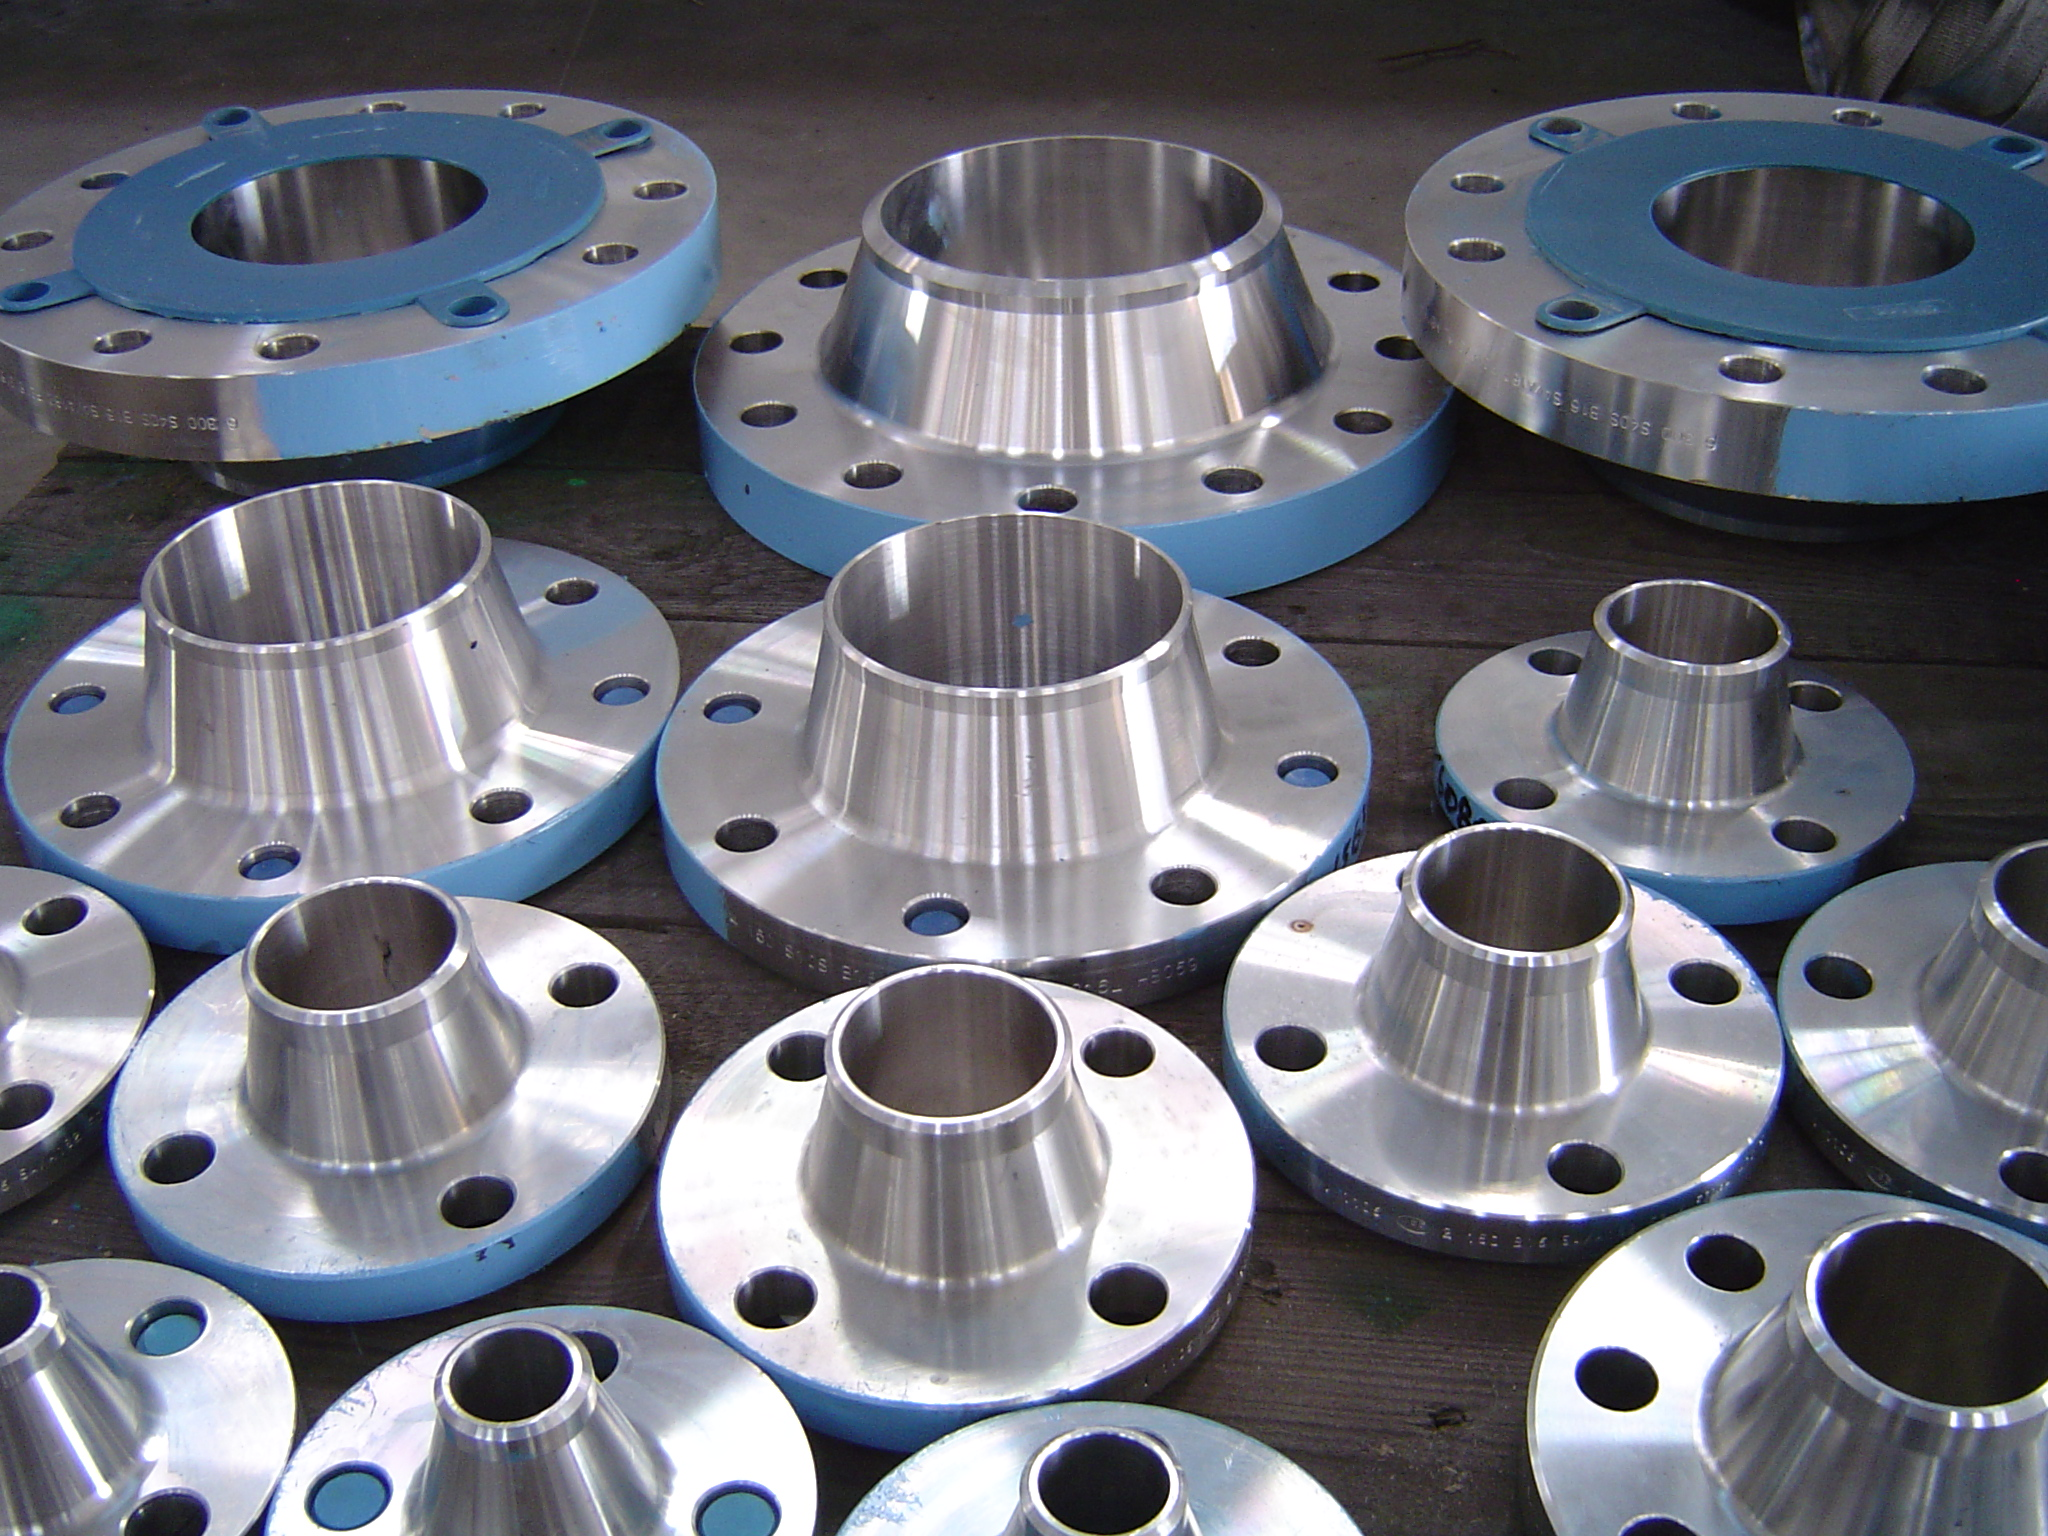 Flanges pattech fitwell tube components